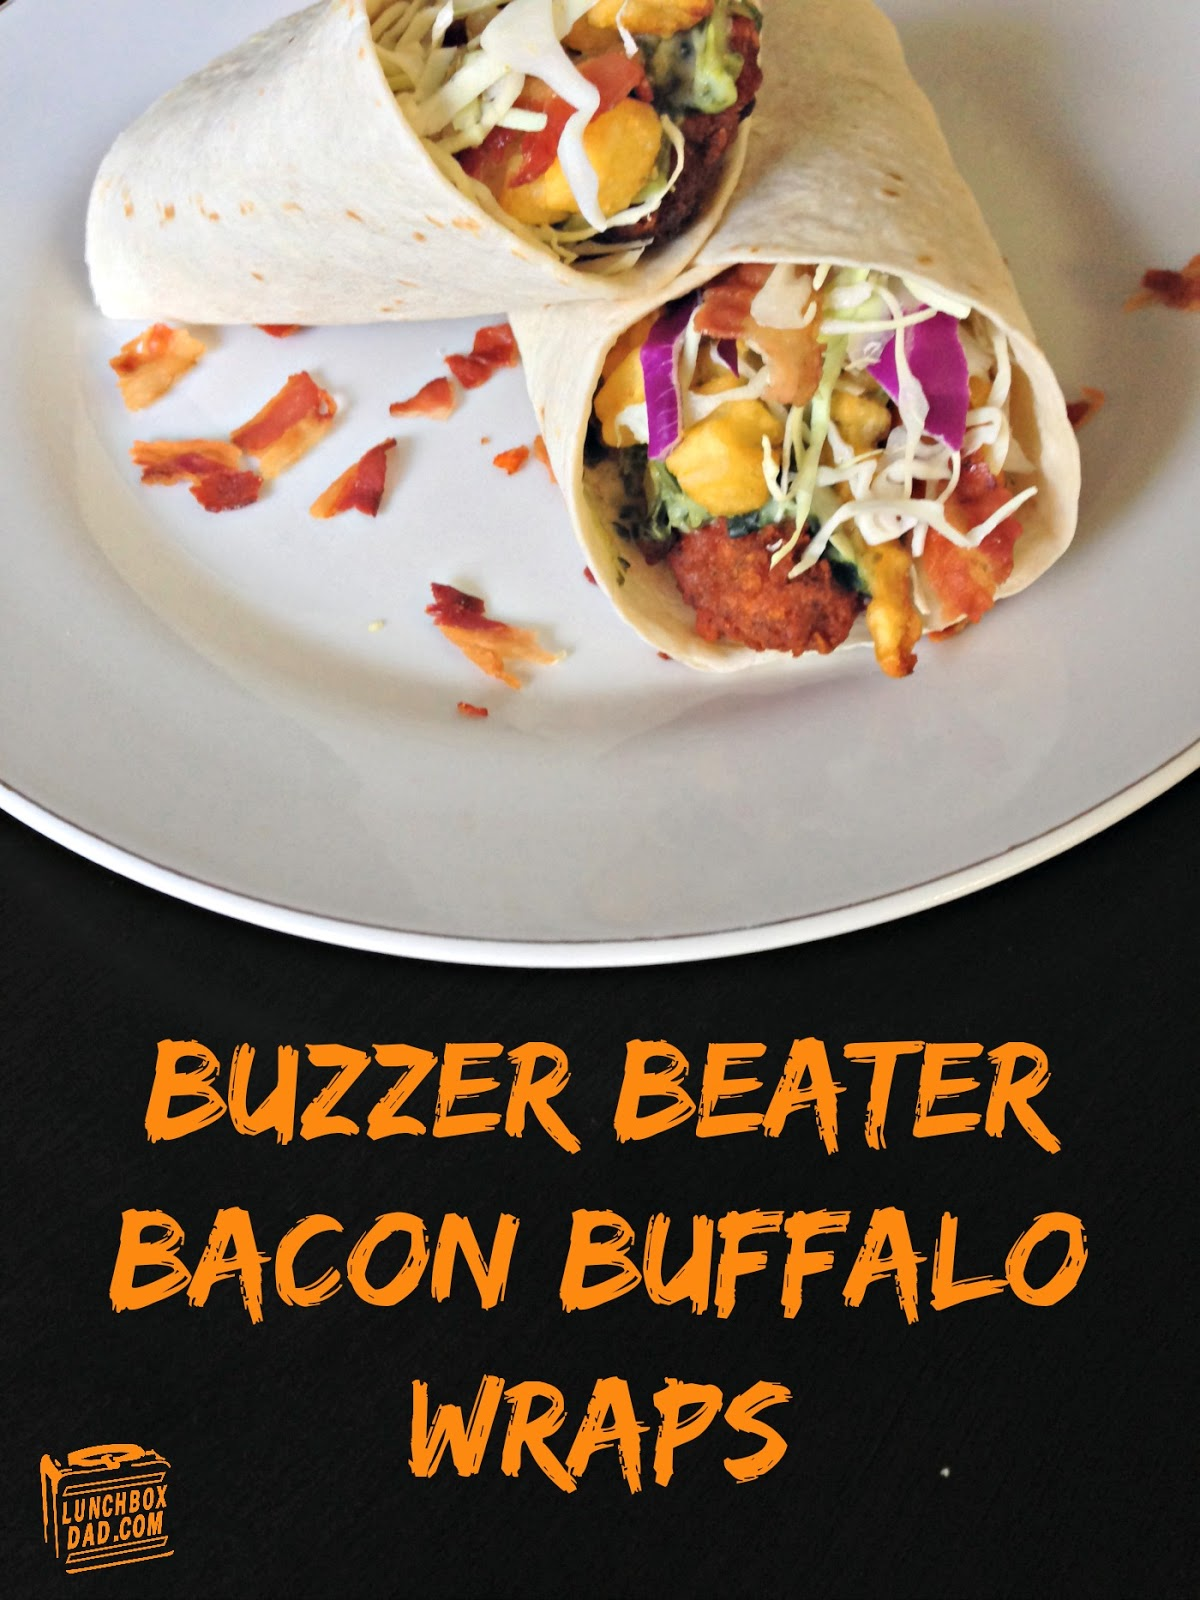 Buzzer Beater Bacon Buffalo Wraps #FrozenChefMadness